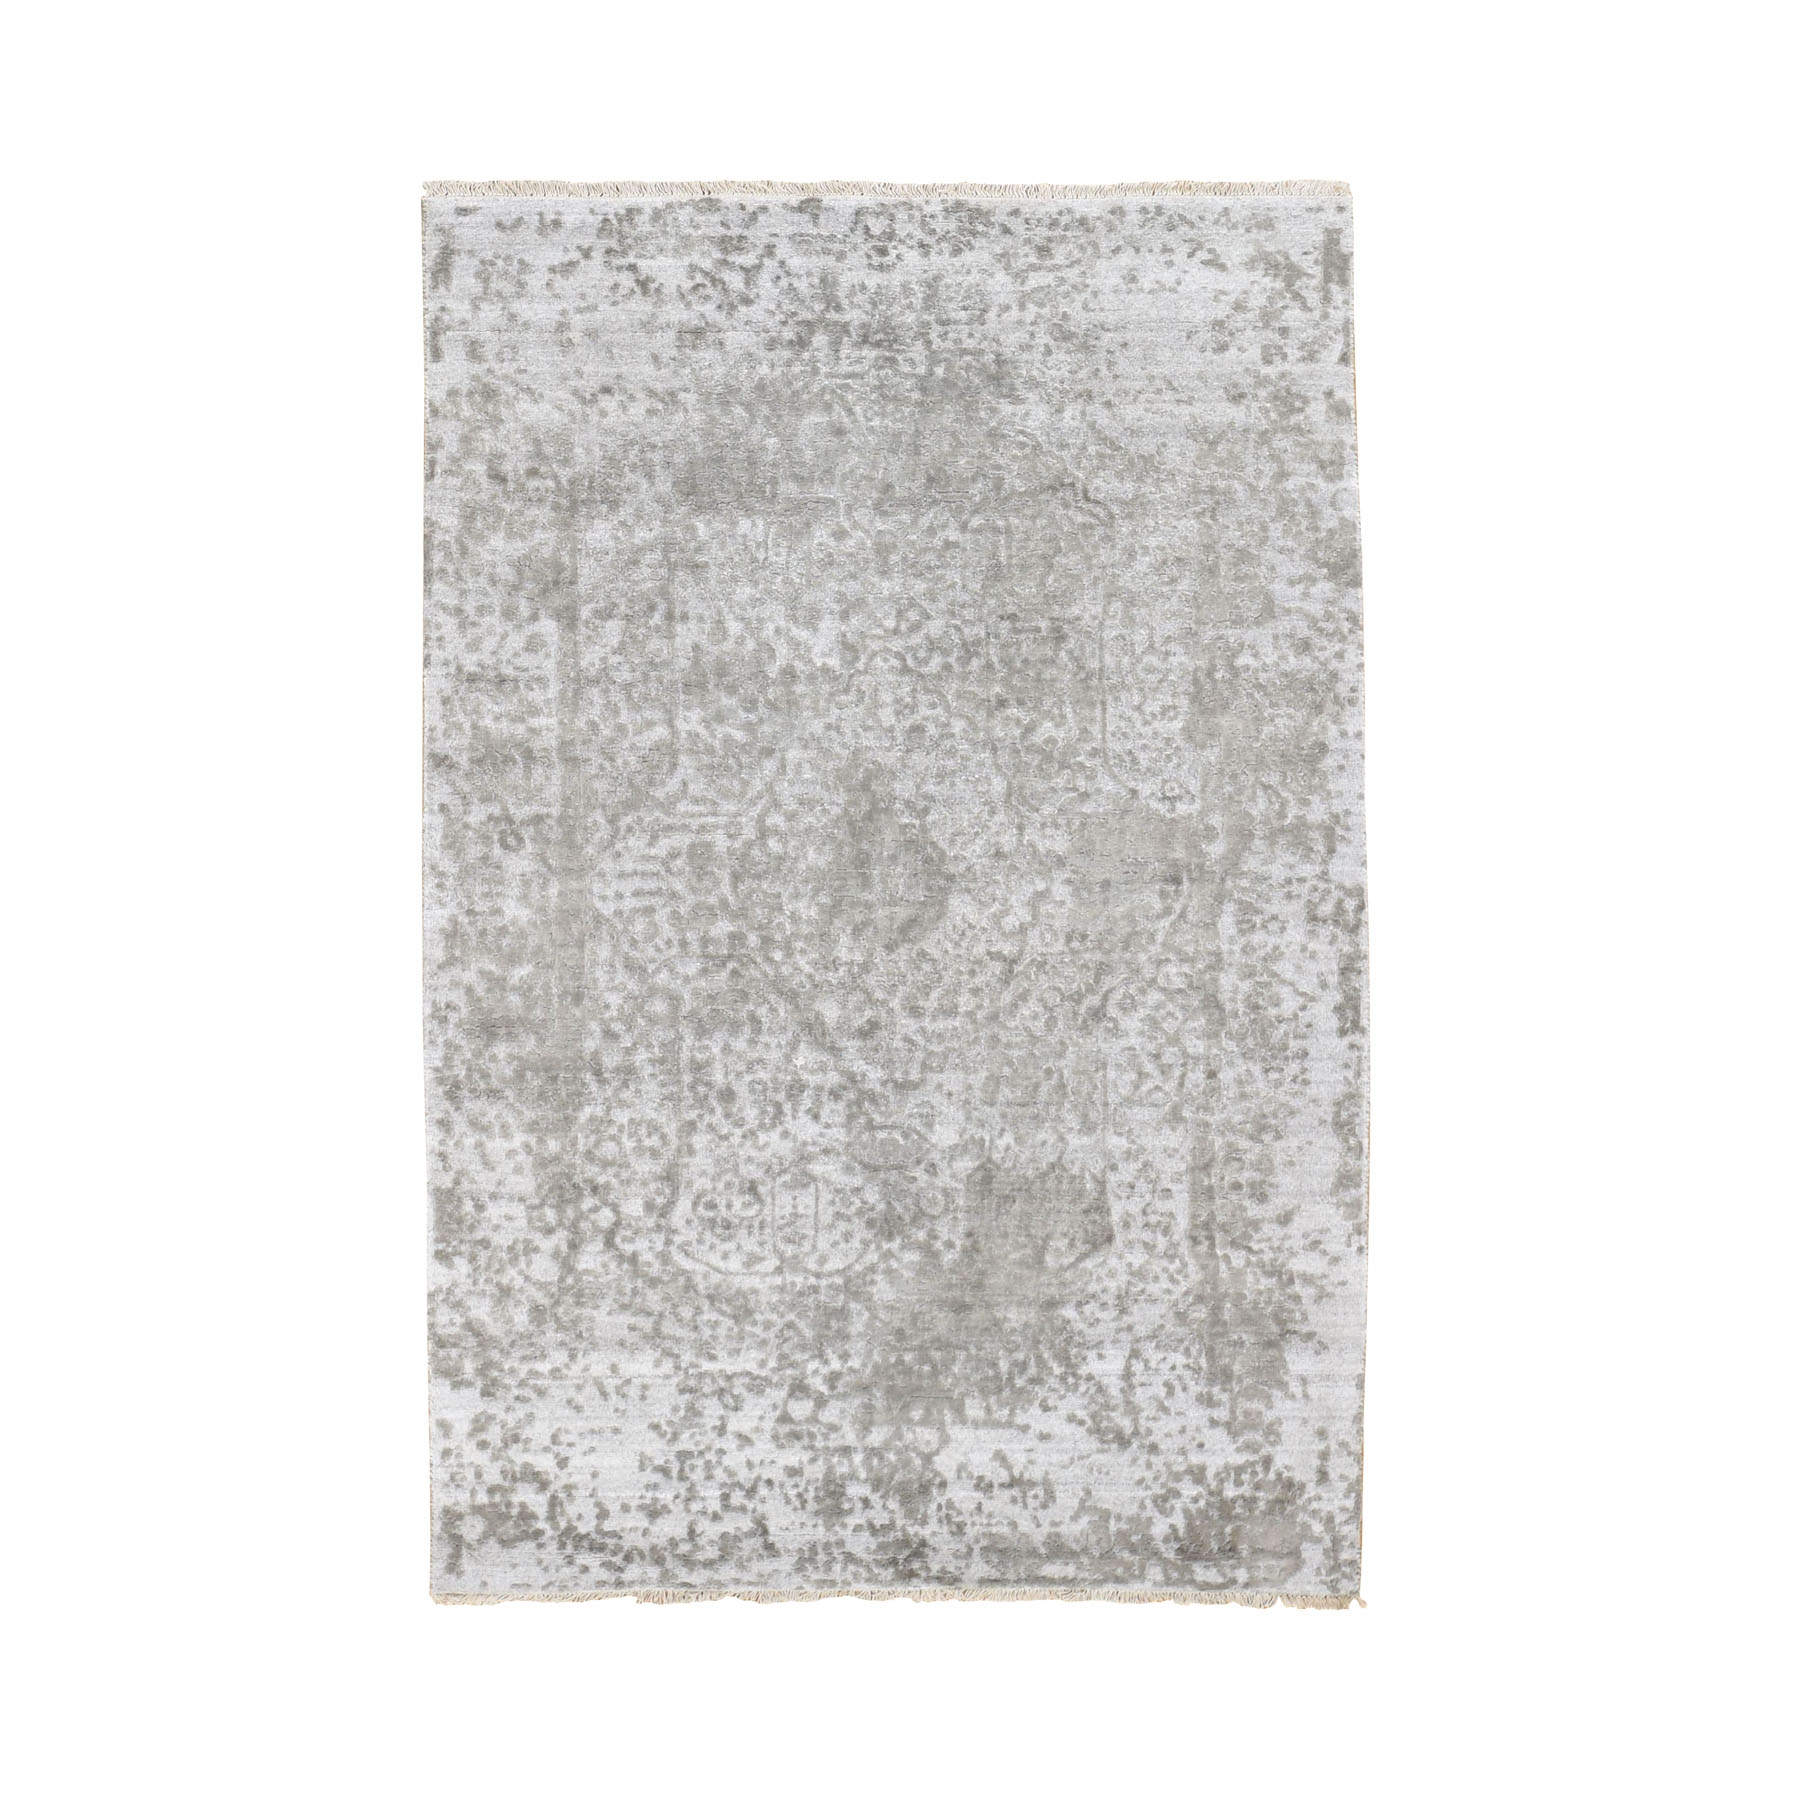 4'x6' Silver-Dark Gray Erased Persian Design Wool and Pure Silk Hand Woven Oriental Rug